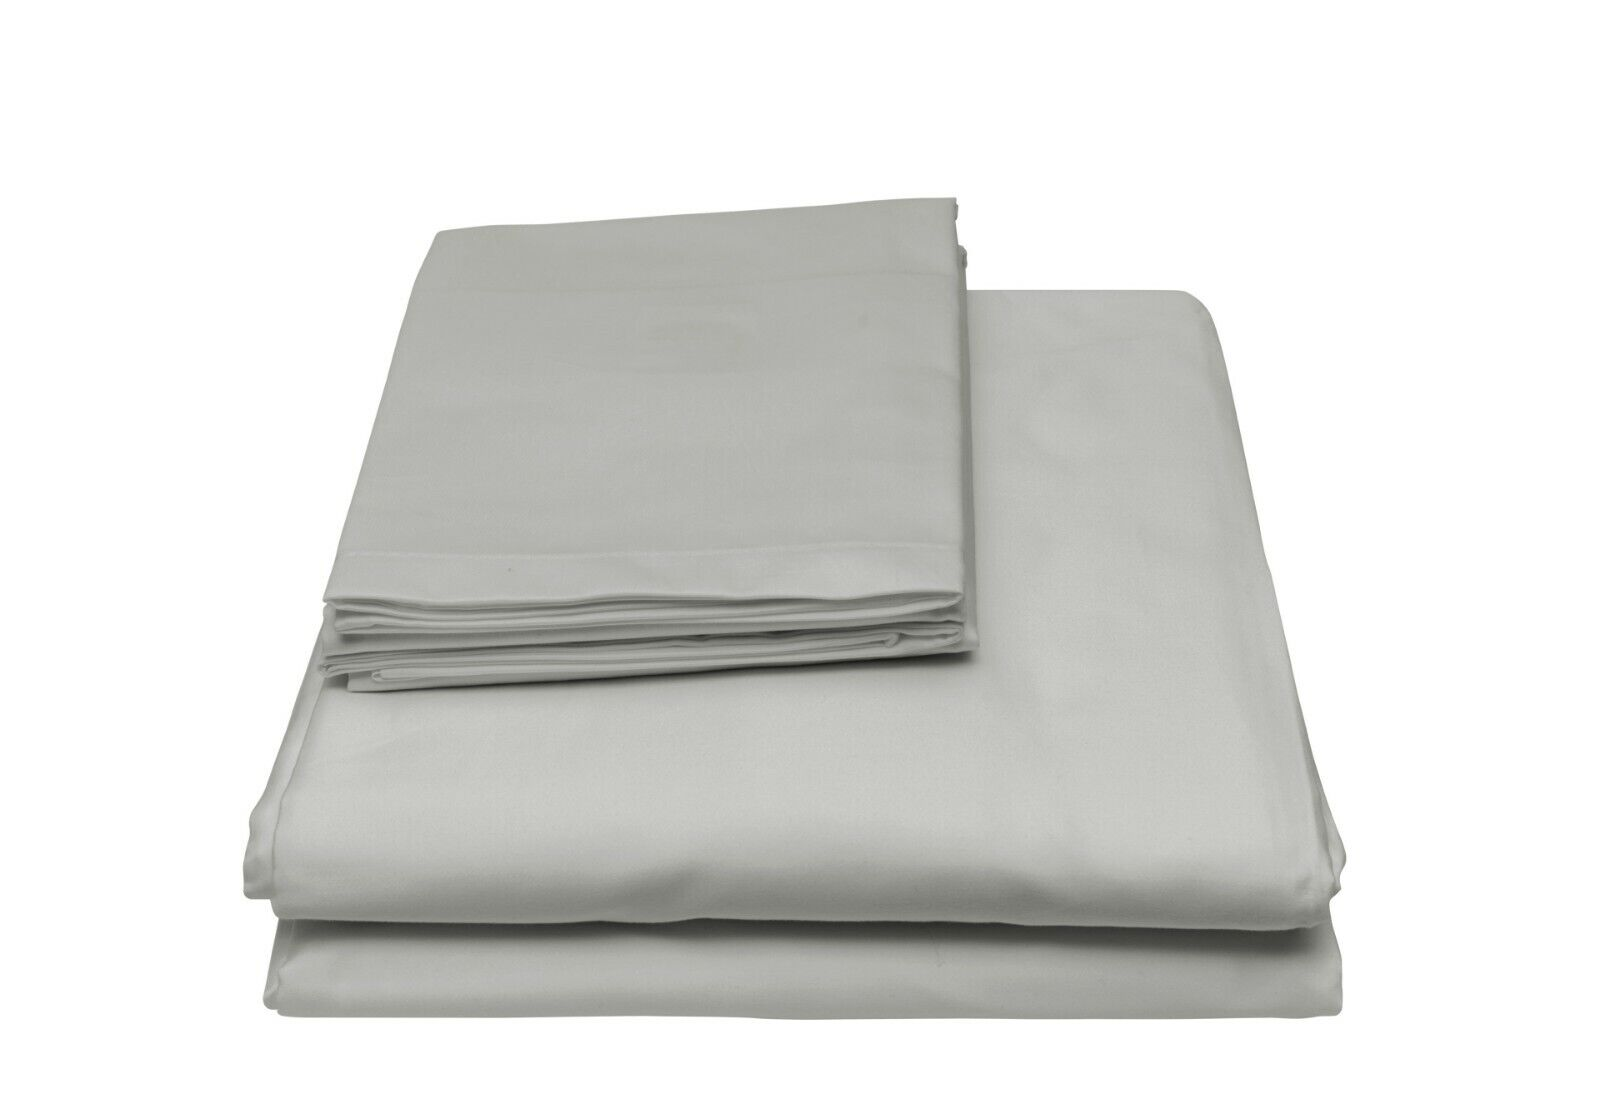 EGYPTIAN COTTON COOL 1800 THREAD COUNT SHEETS FOR BED DEEP P